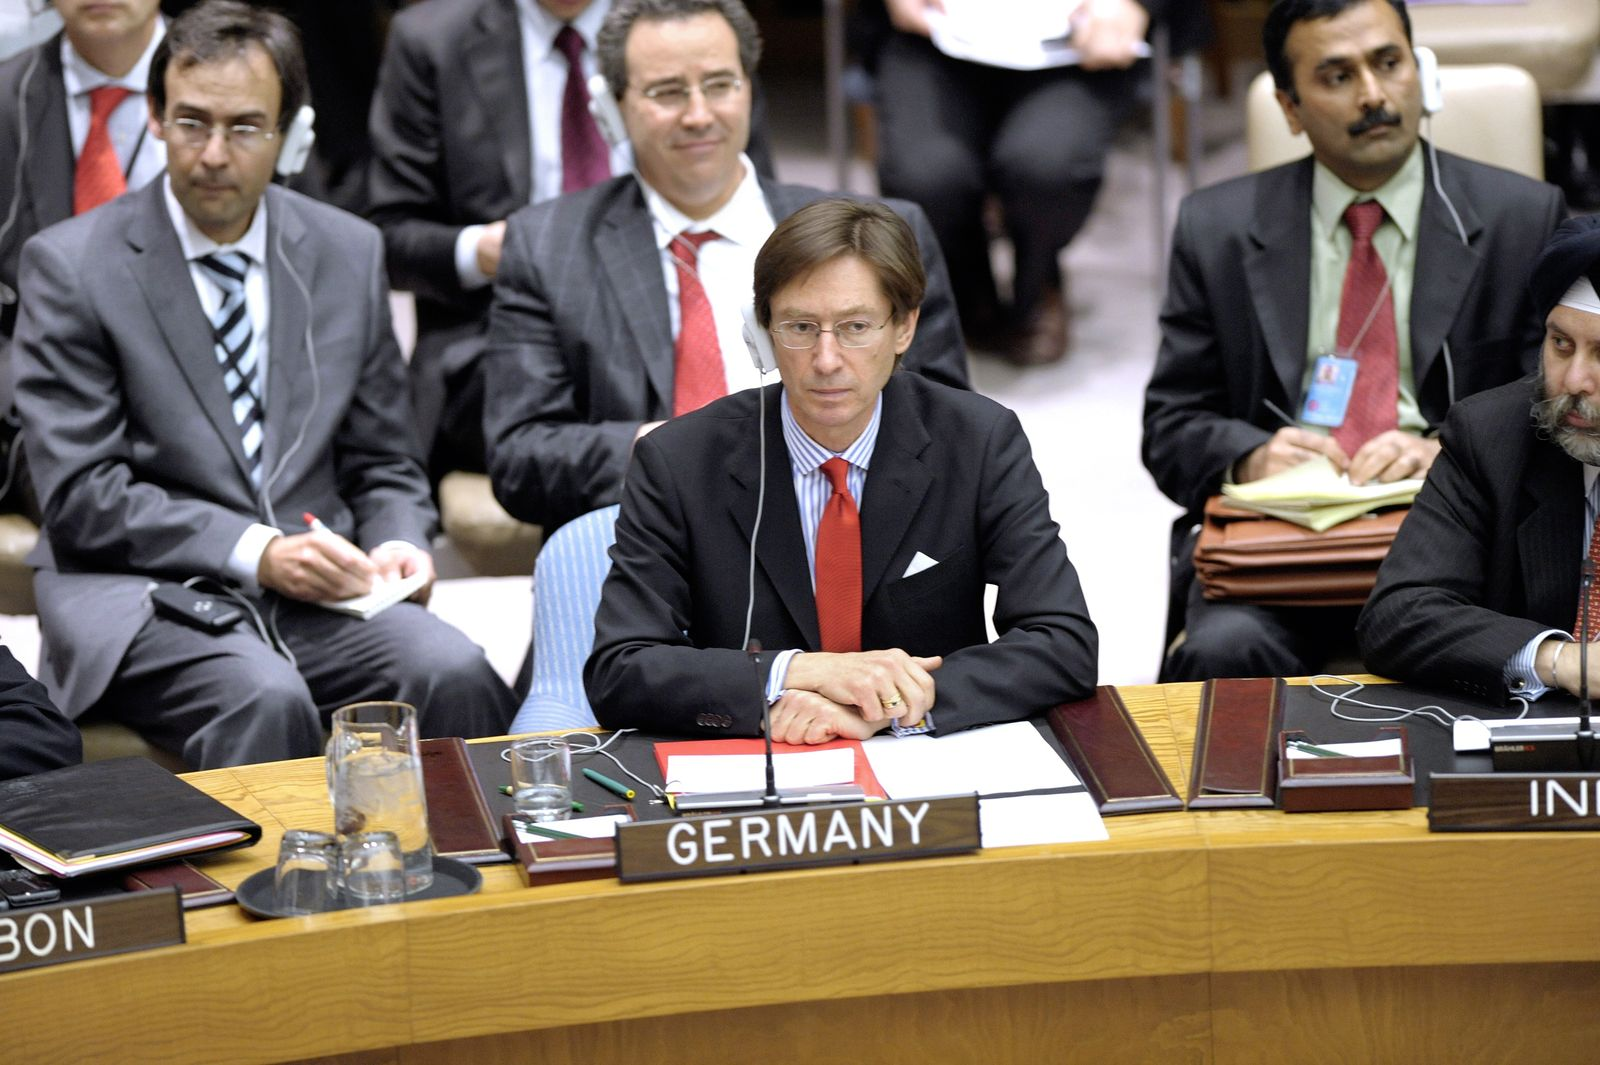 Germany Security Council vote